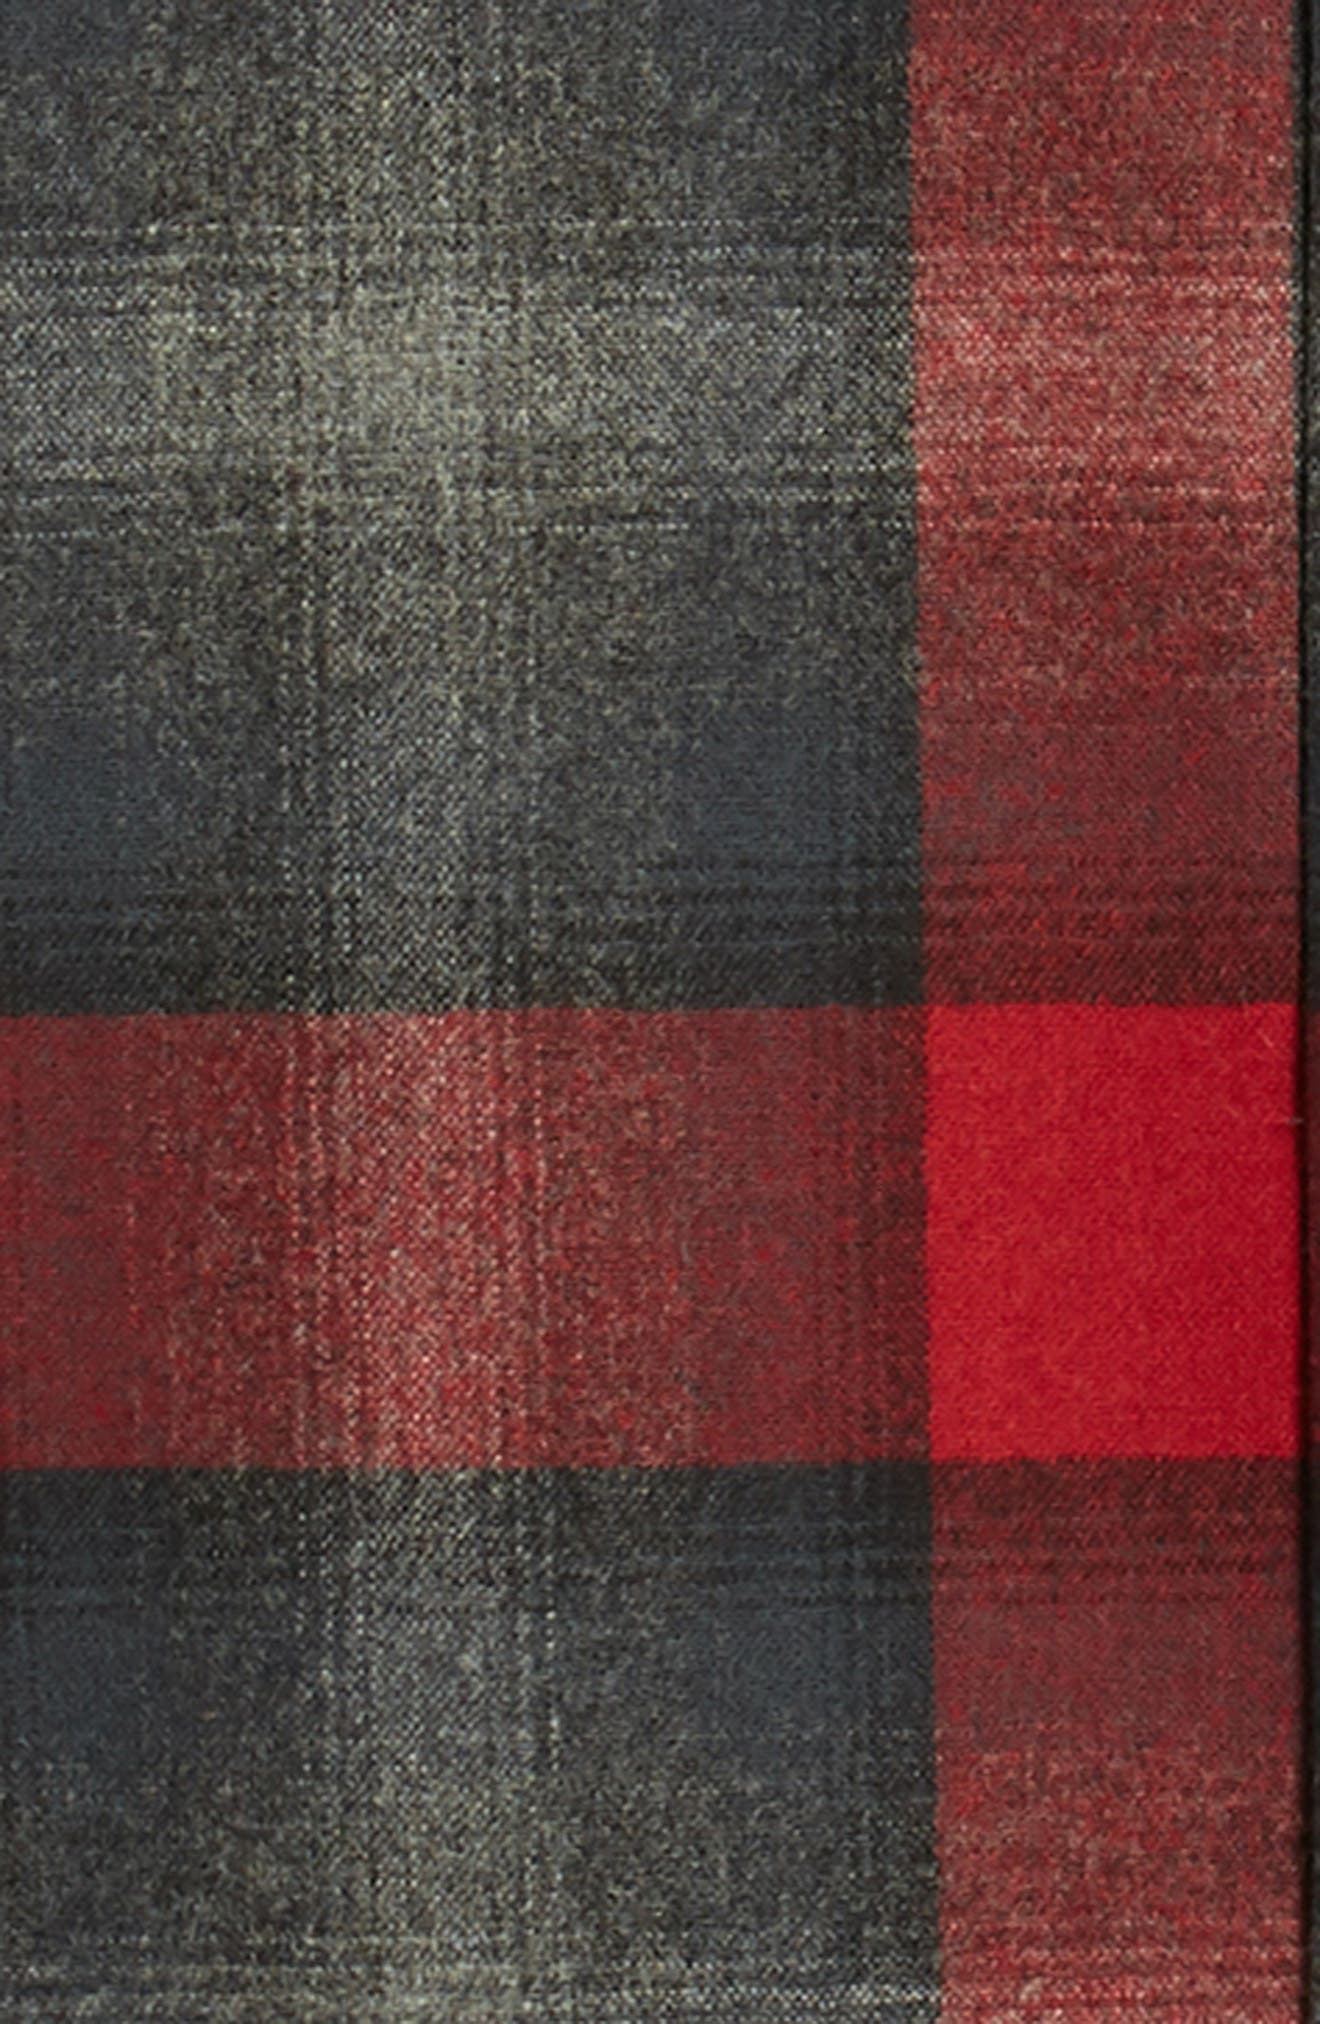 Board Wool Flannel Shirt,                             Alternate thumbnail 6, color,                             BLACK/ GREY MIX/ RED OMBRE